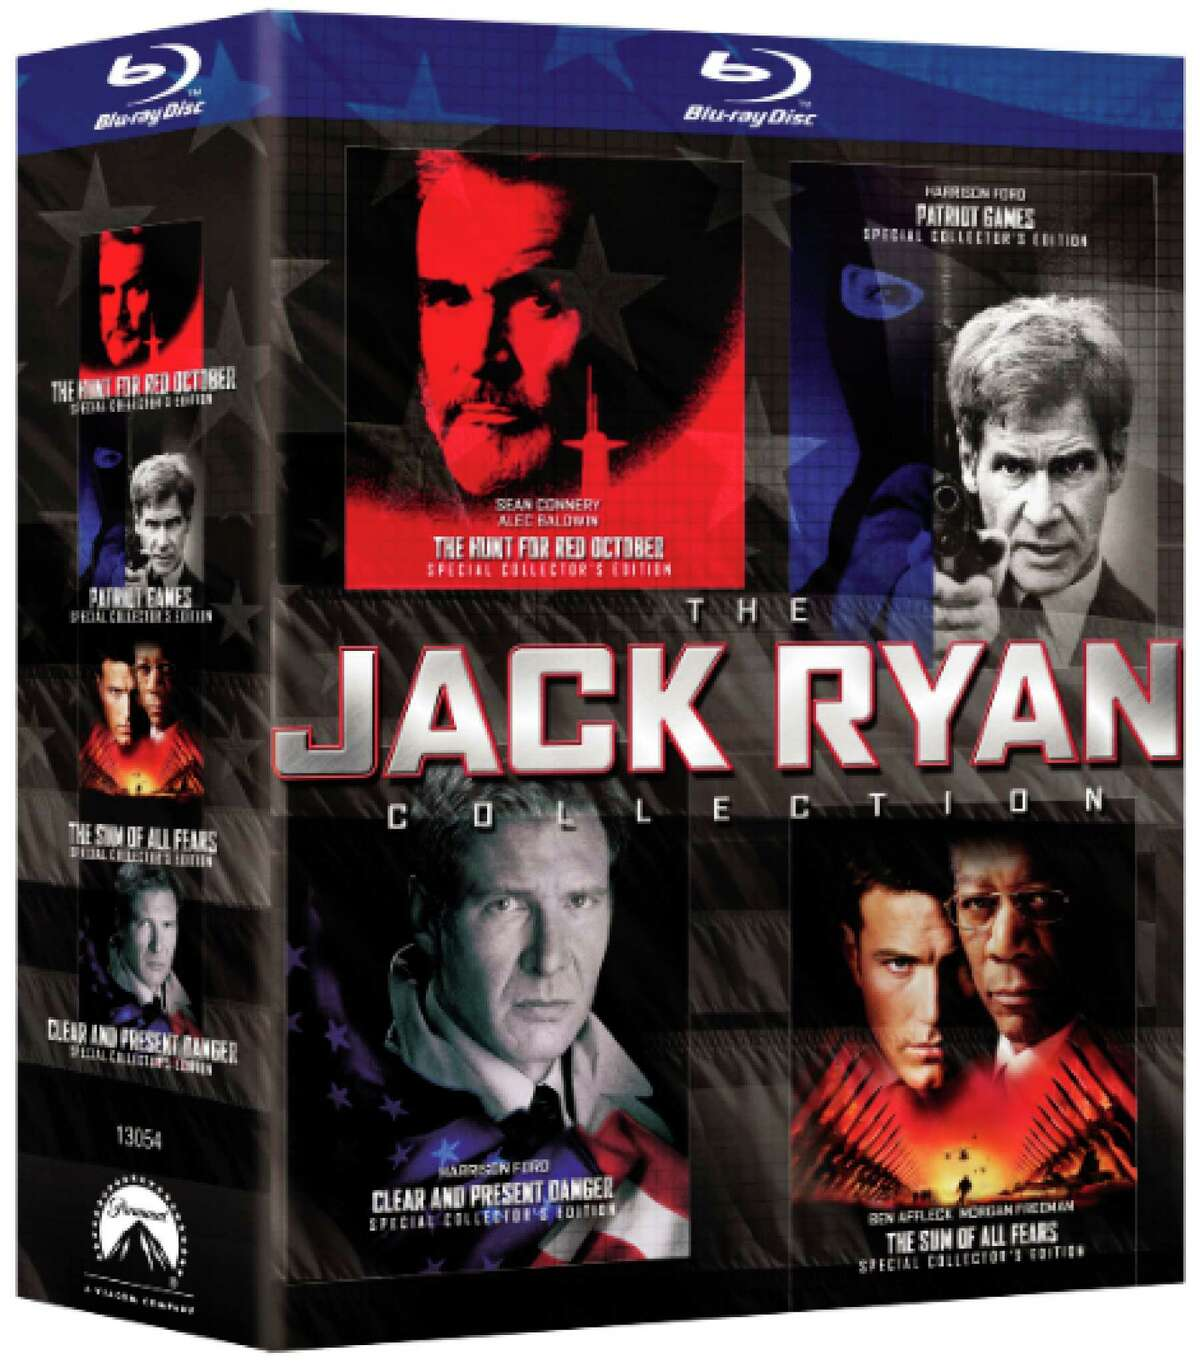 This photo provided by Paramount/Paramount Pictures shows the Blu-ray Jack Ryan Collection. (AP Photo/Paramount / Paramount Pictures) ORG XMIT: CAET568